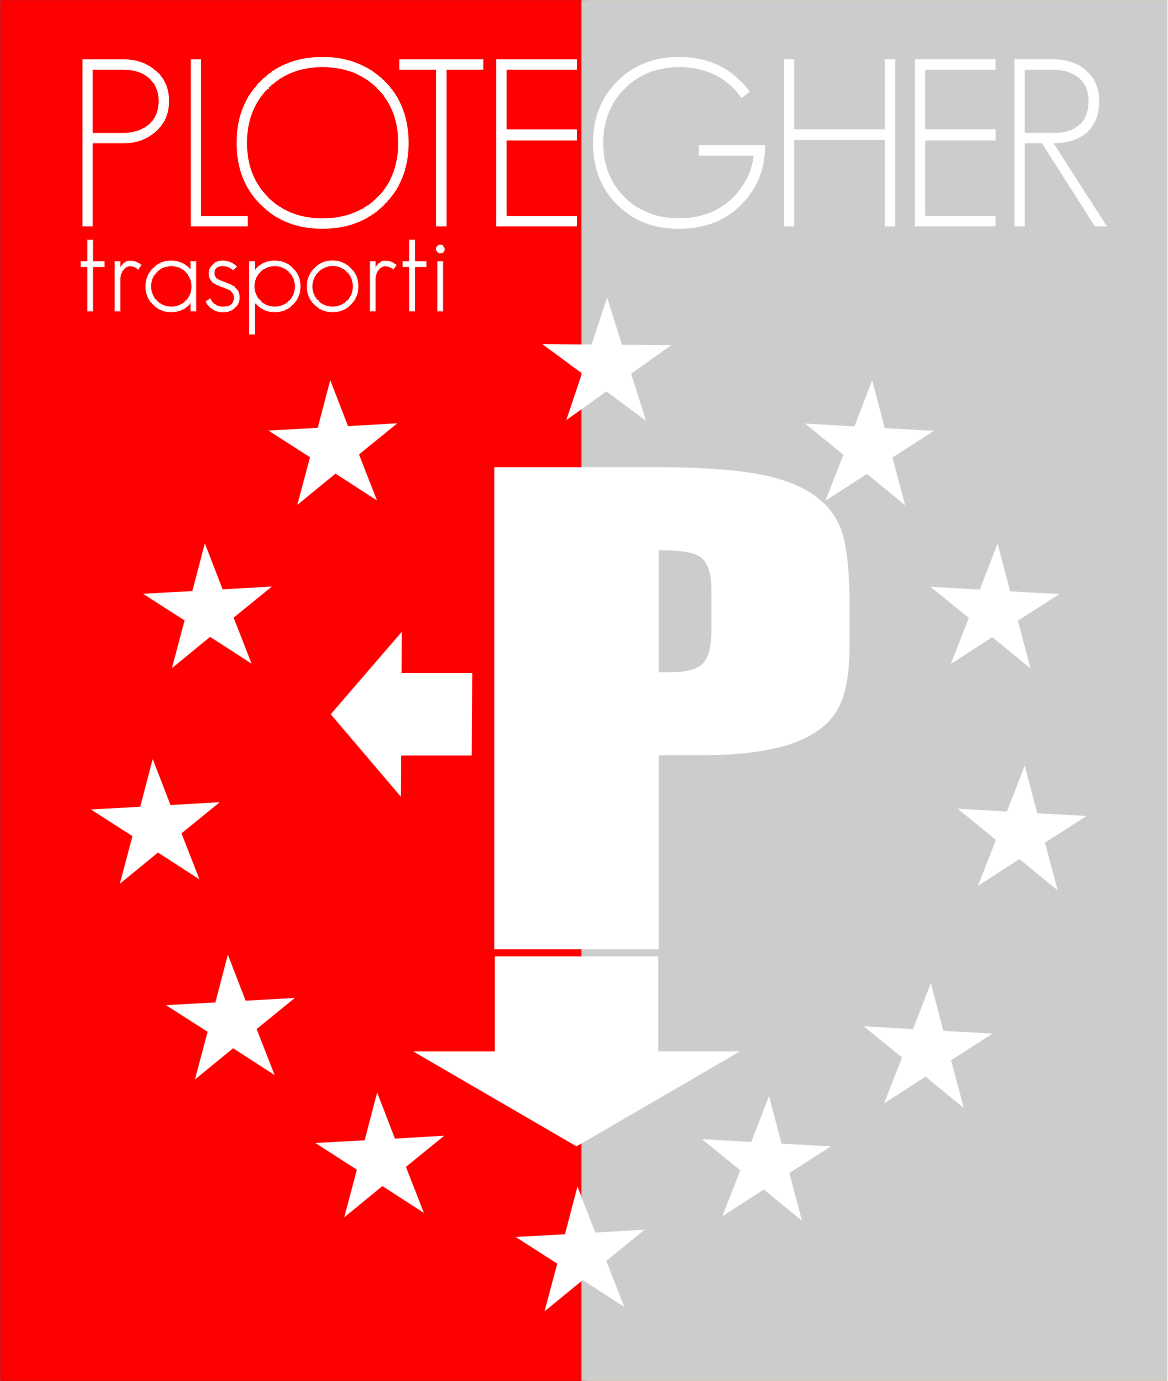 Plotegher Trasporti